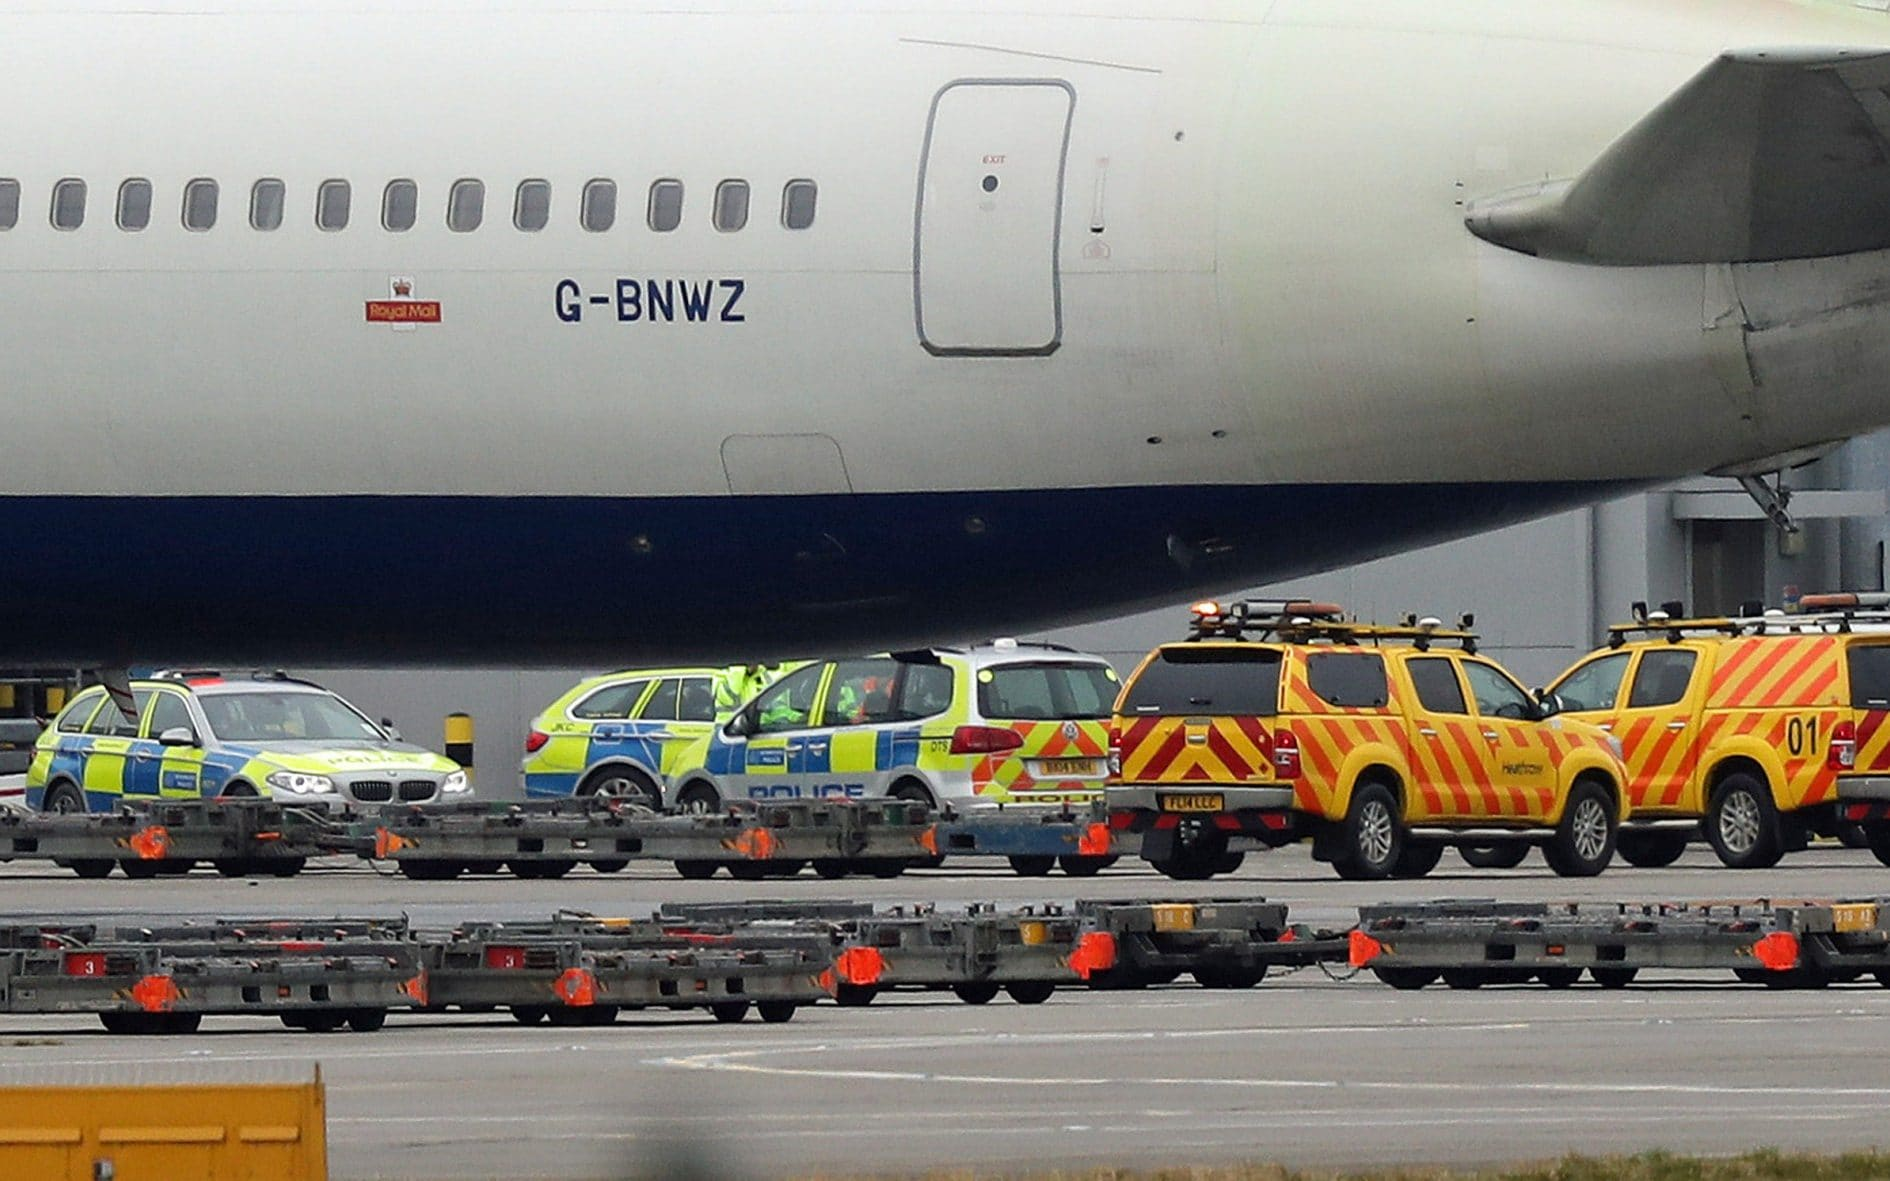 Police and airside operations vehicles at Heathrow Airport where a man, aged in his 40s, died after two airport vehicles crashed on the airfield